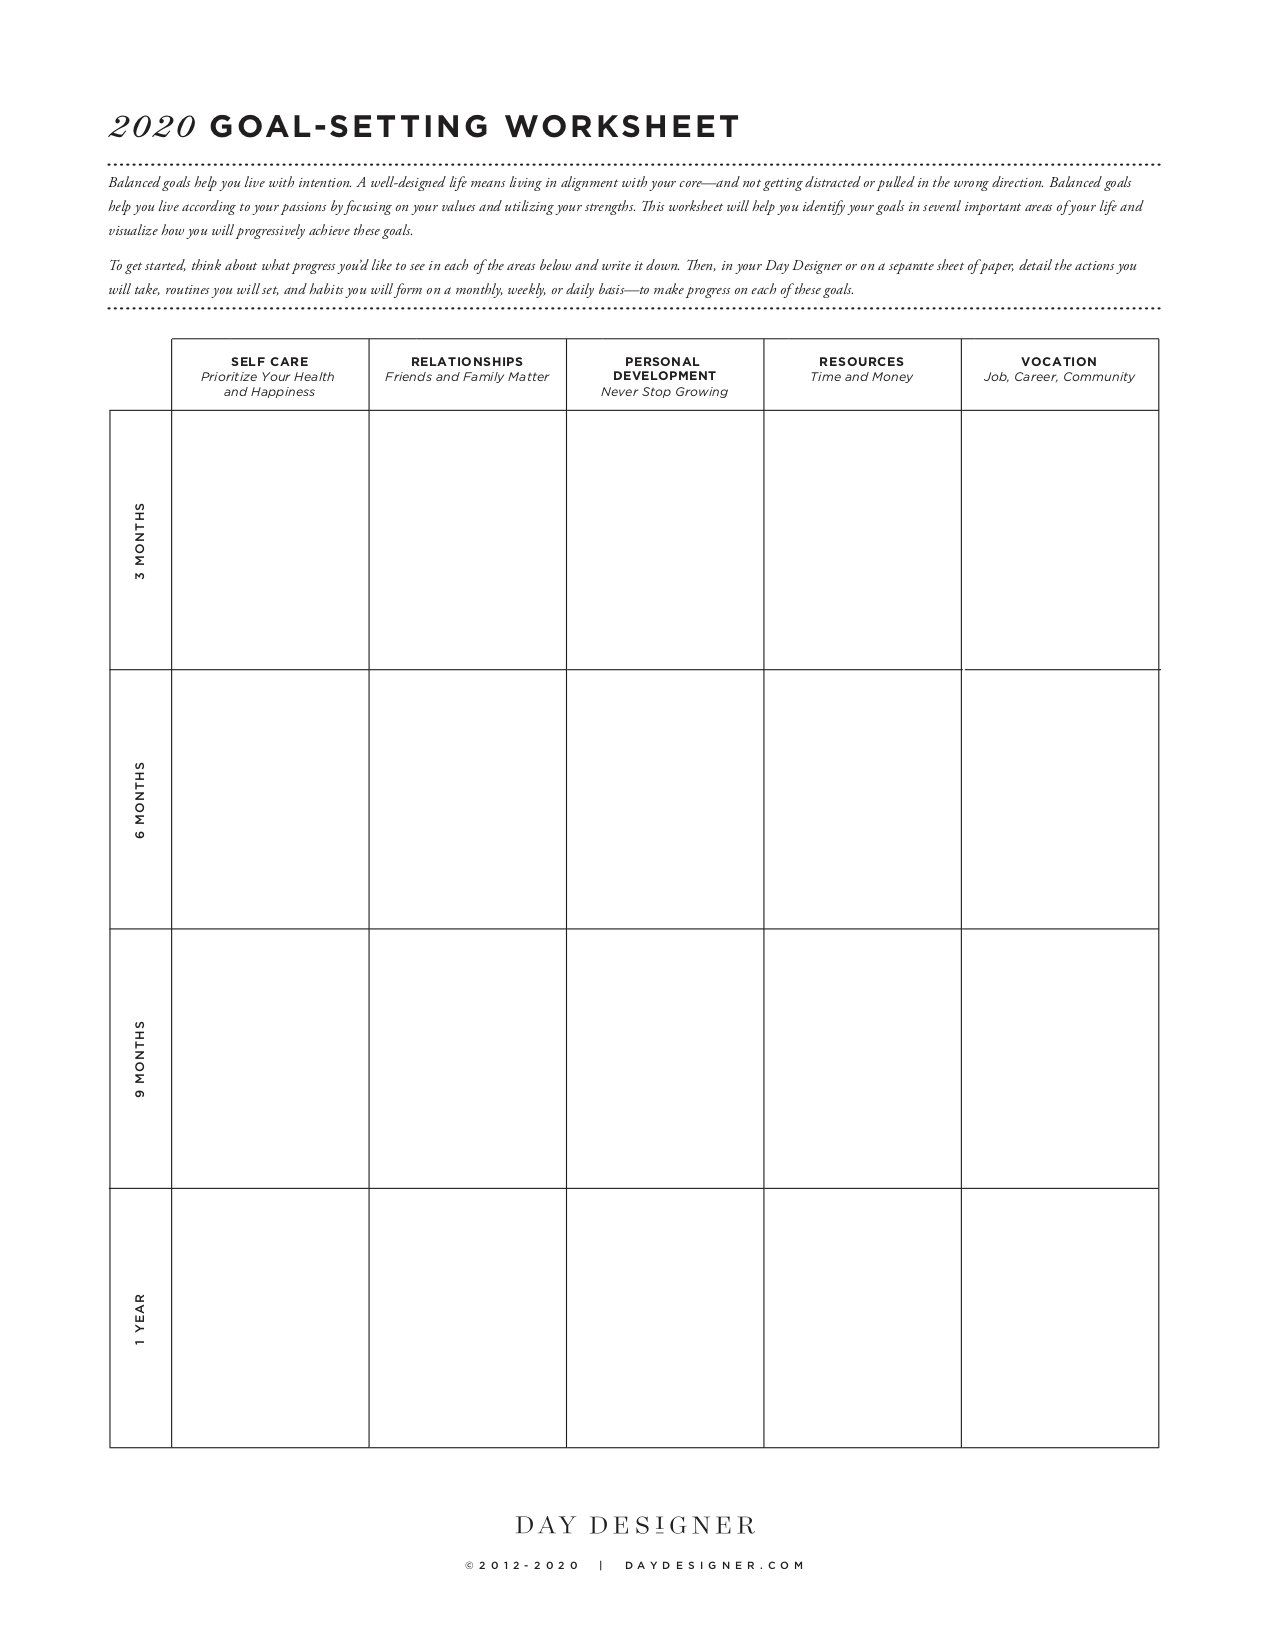 10 Best Goal Setting Worksheets